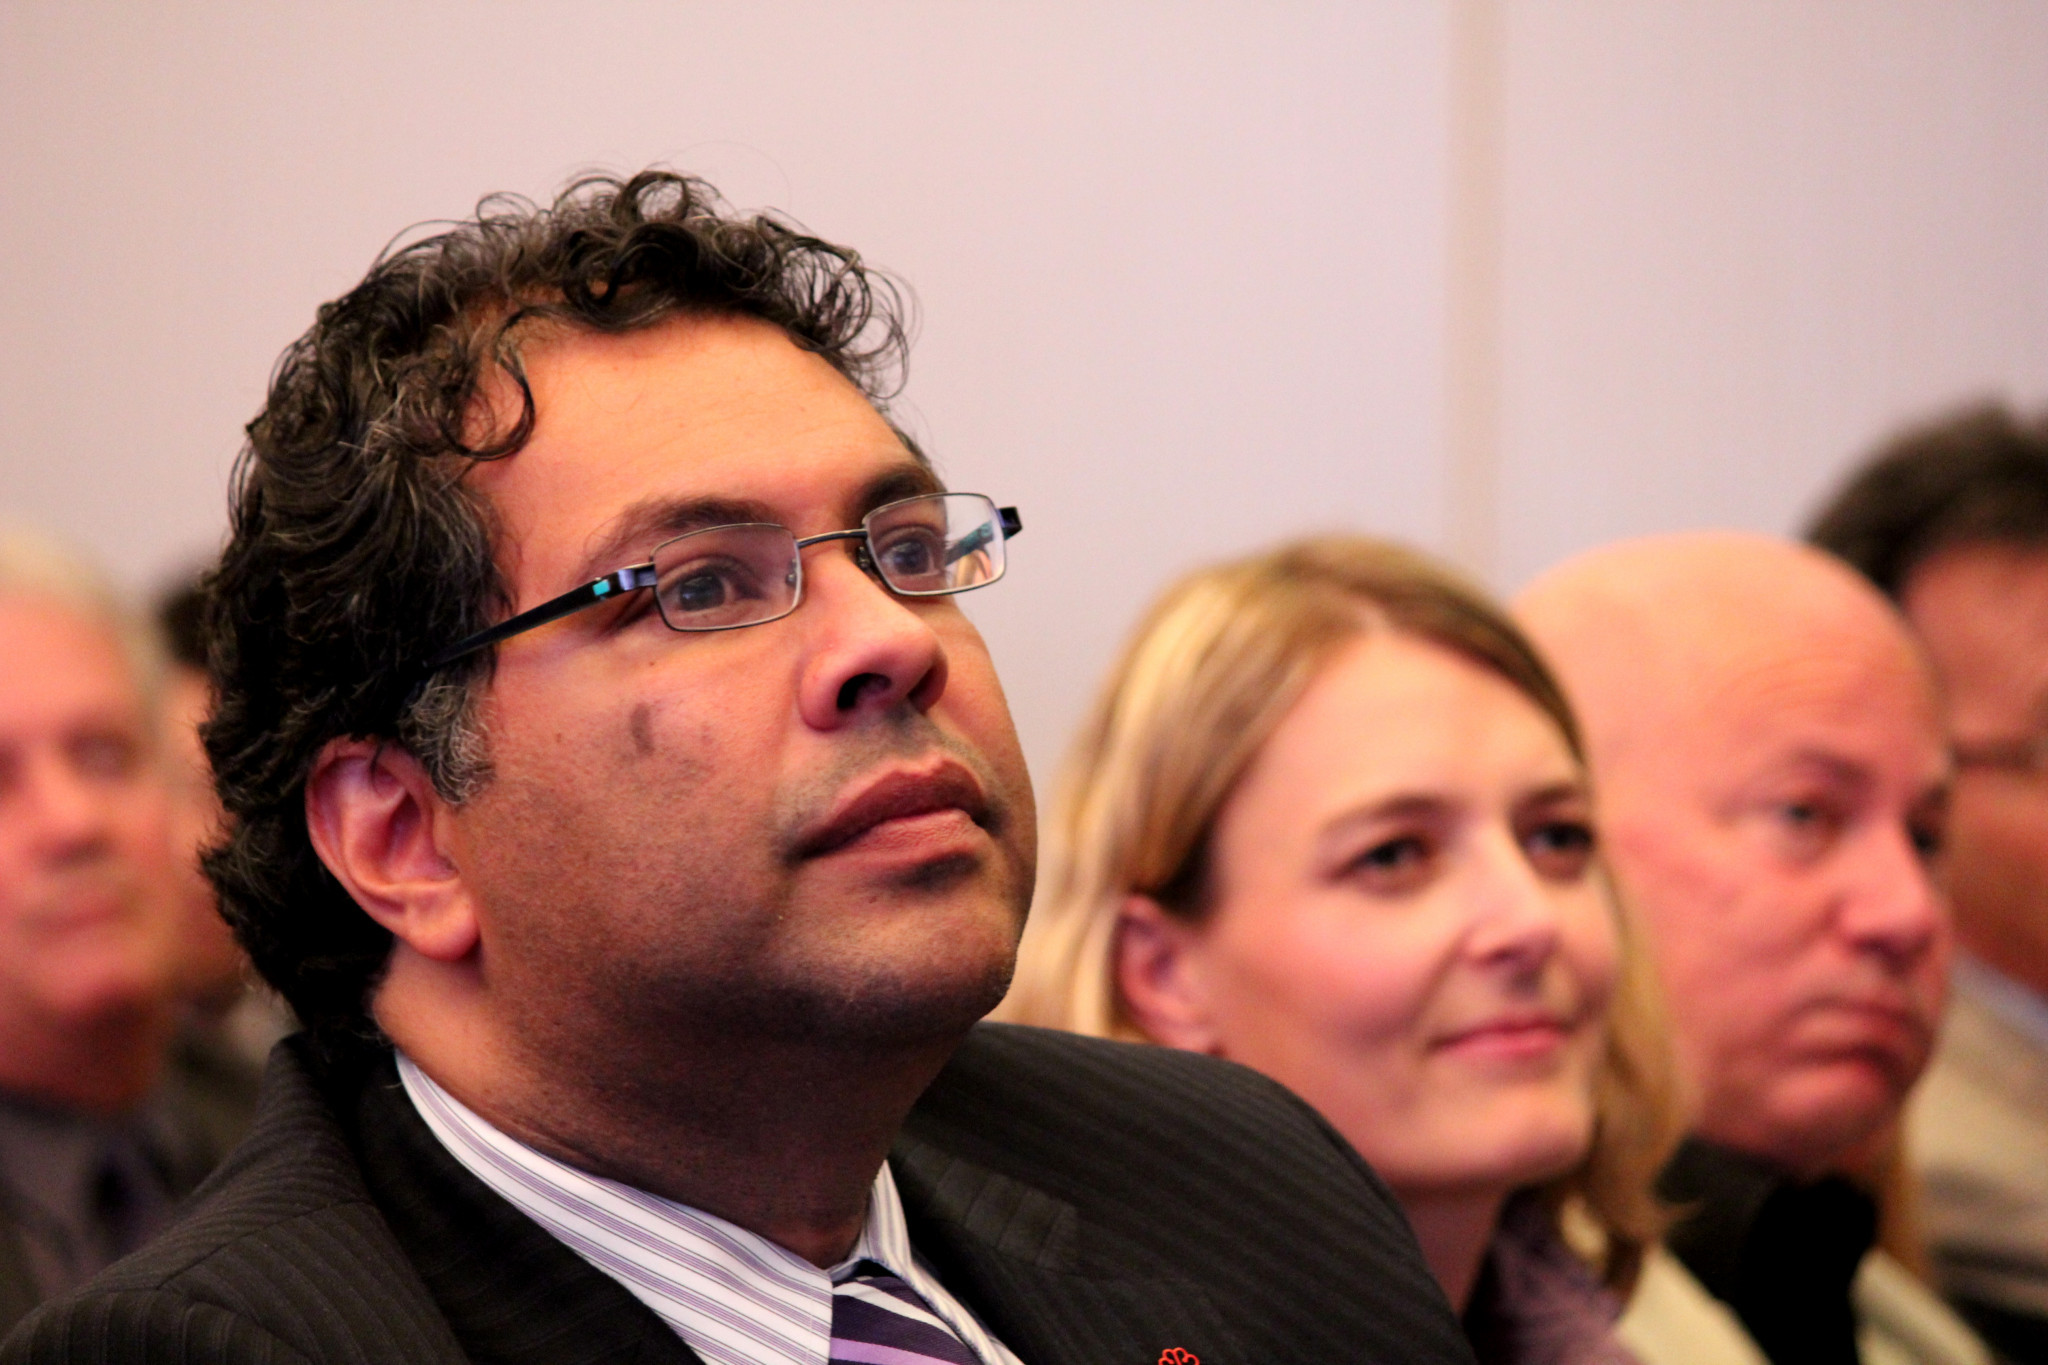 Calgary Mayor Naheed Nenshi hopes the City Council backing will lead to Government support ©Getty Images